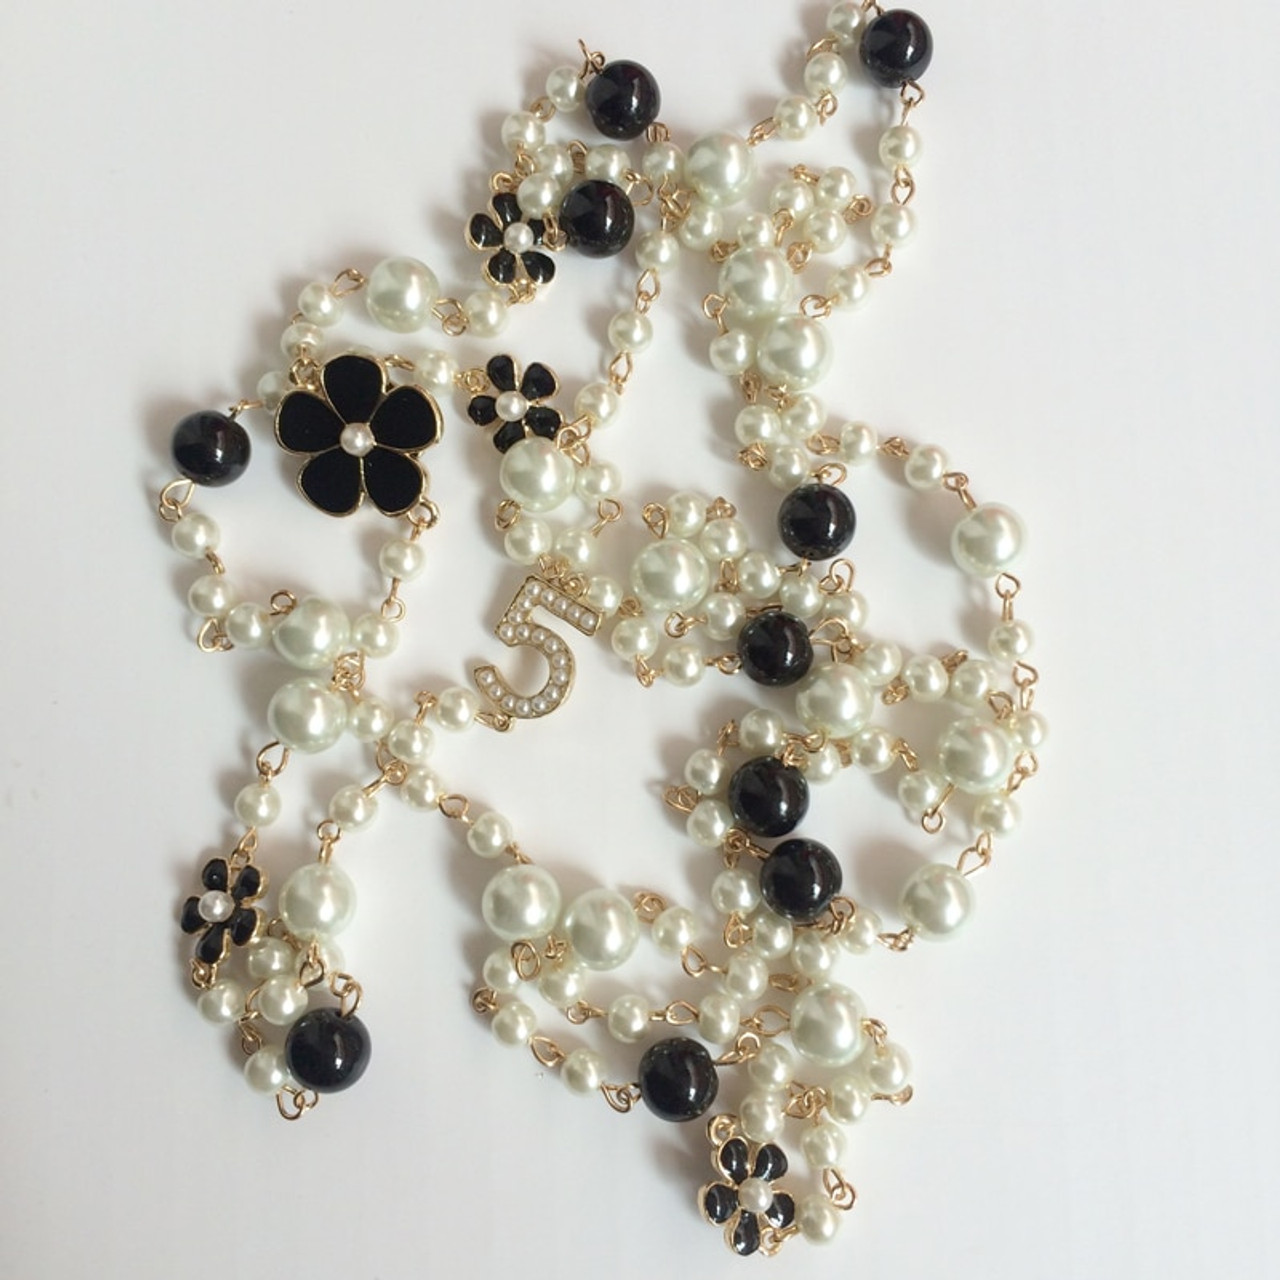 Long Pearl Necklace No.5 Double Layer collane cc Necklace Simulated Pearls New